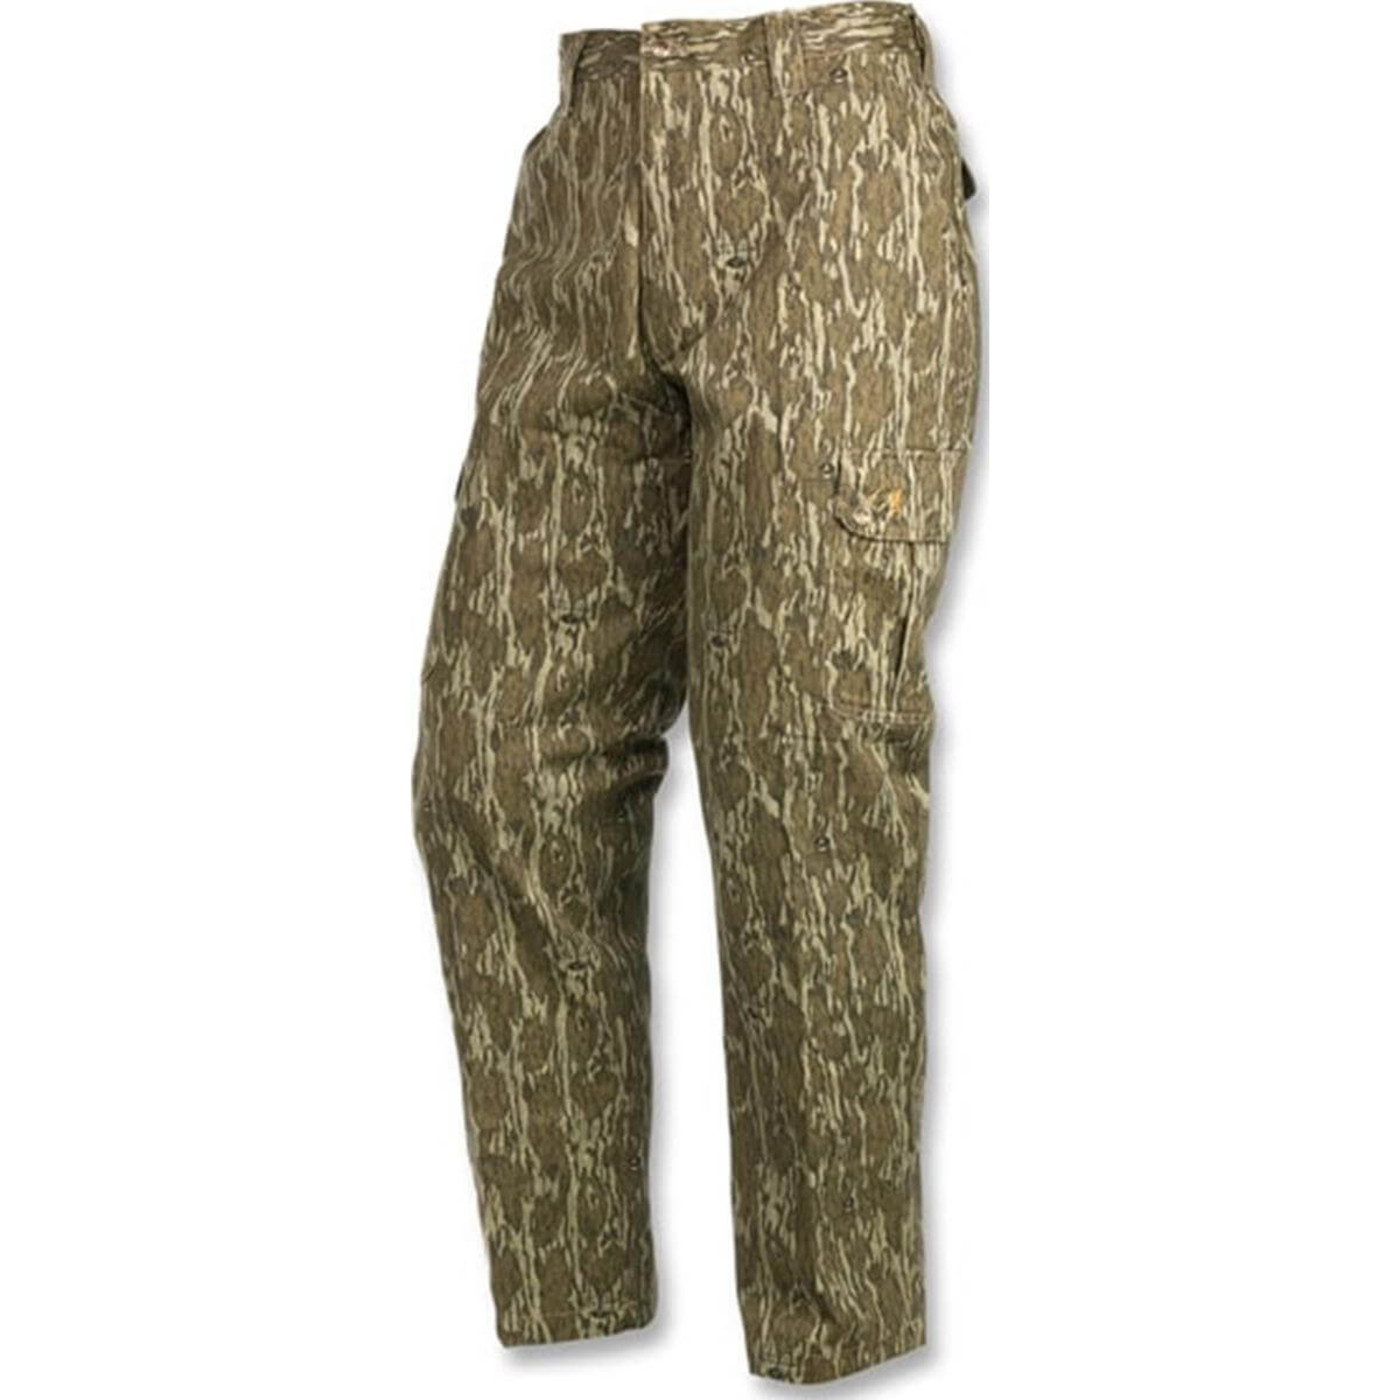 Browning Elite Wasatch Pant in Mossy Oak Bottomland Color